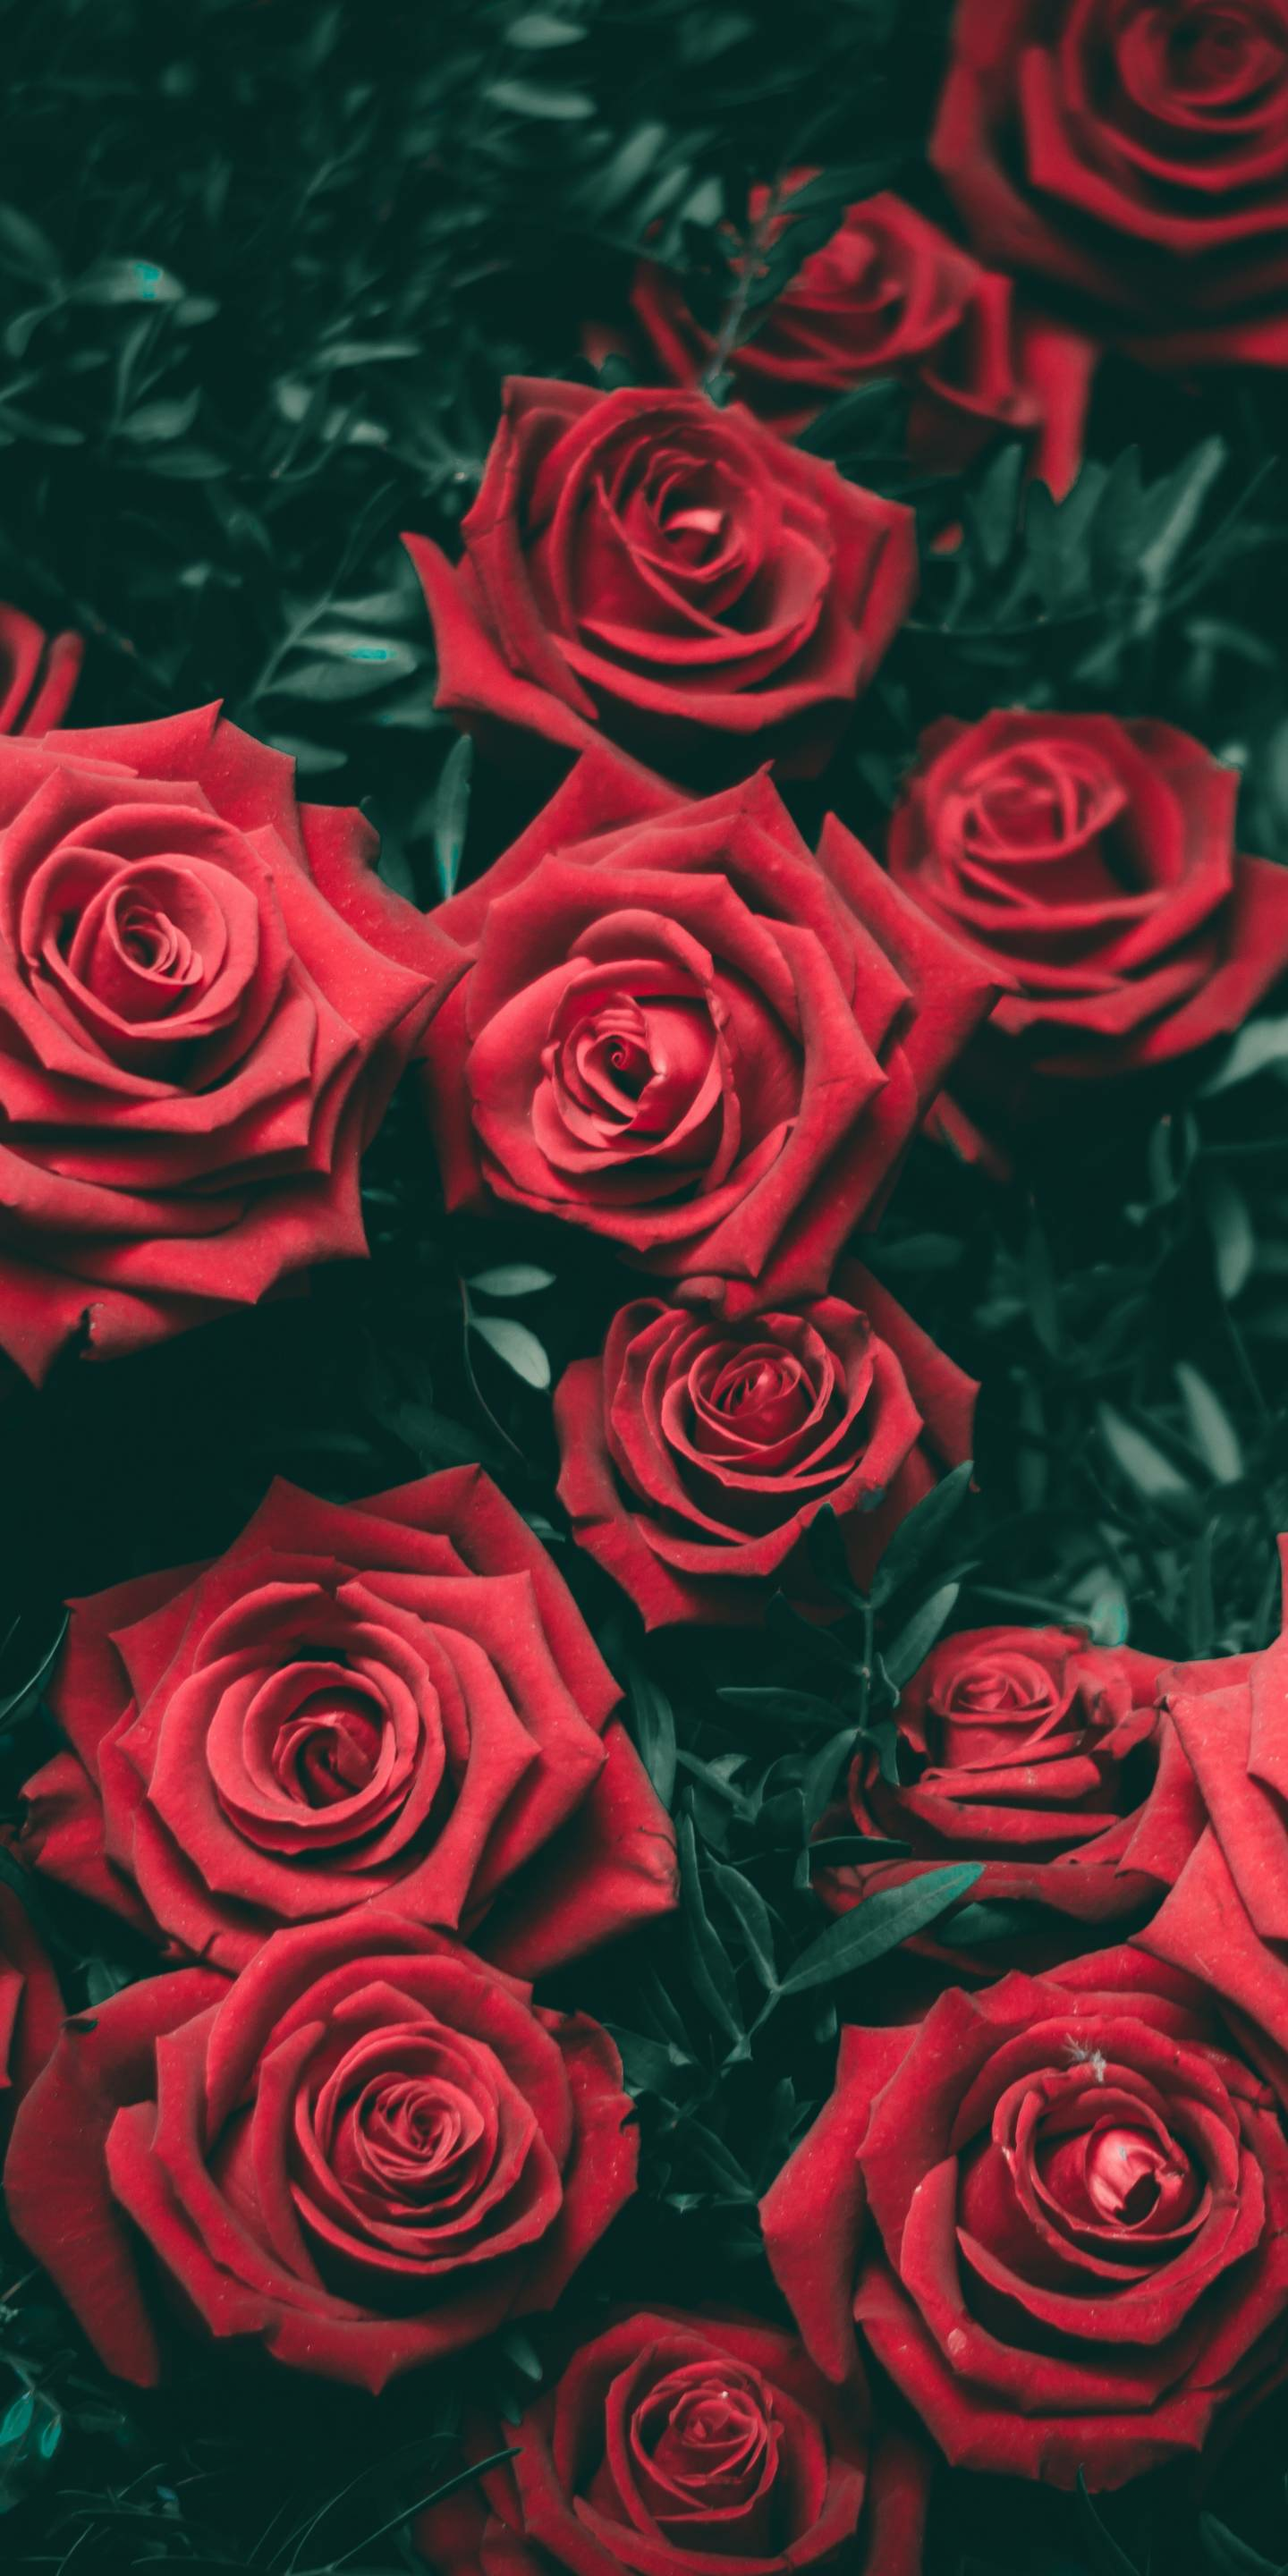 Red Rose Aesthetic Wallpapers   Top Red Rose Aesthetic 1440x2880